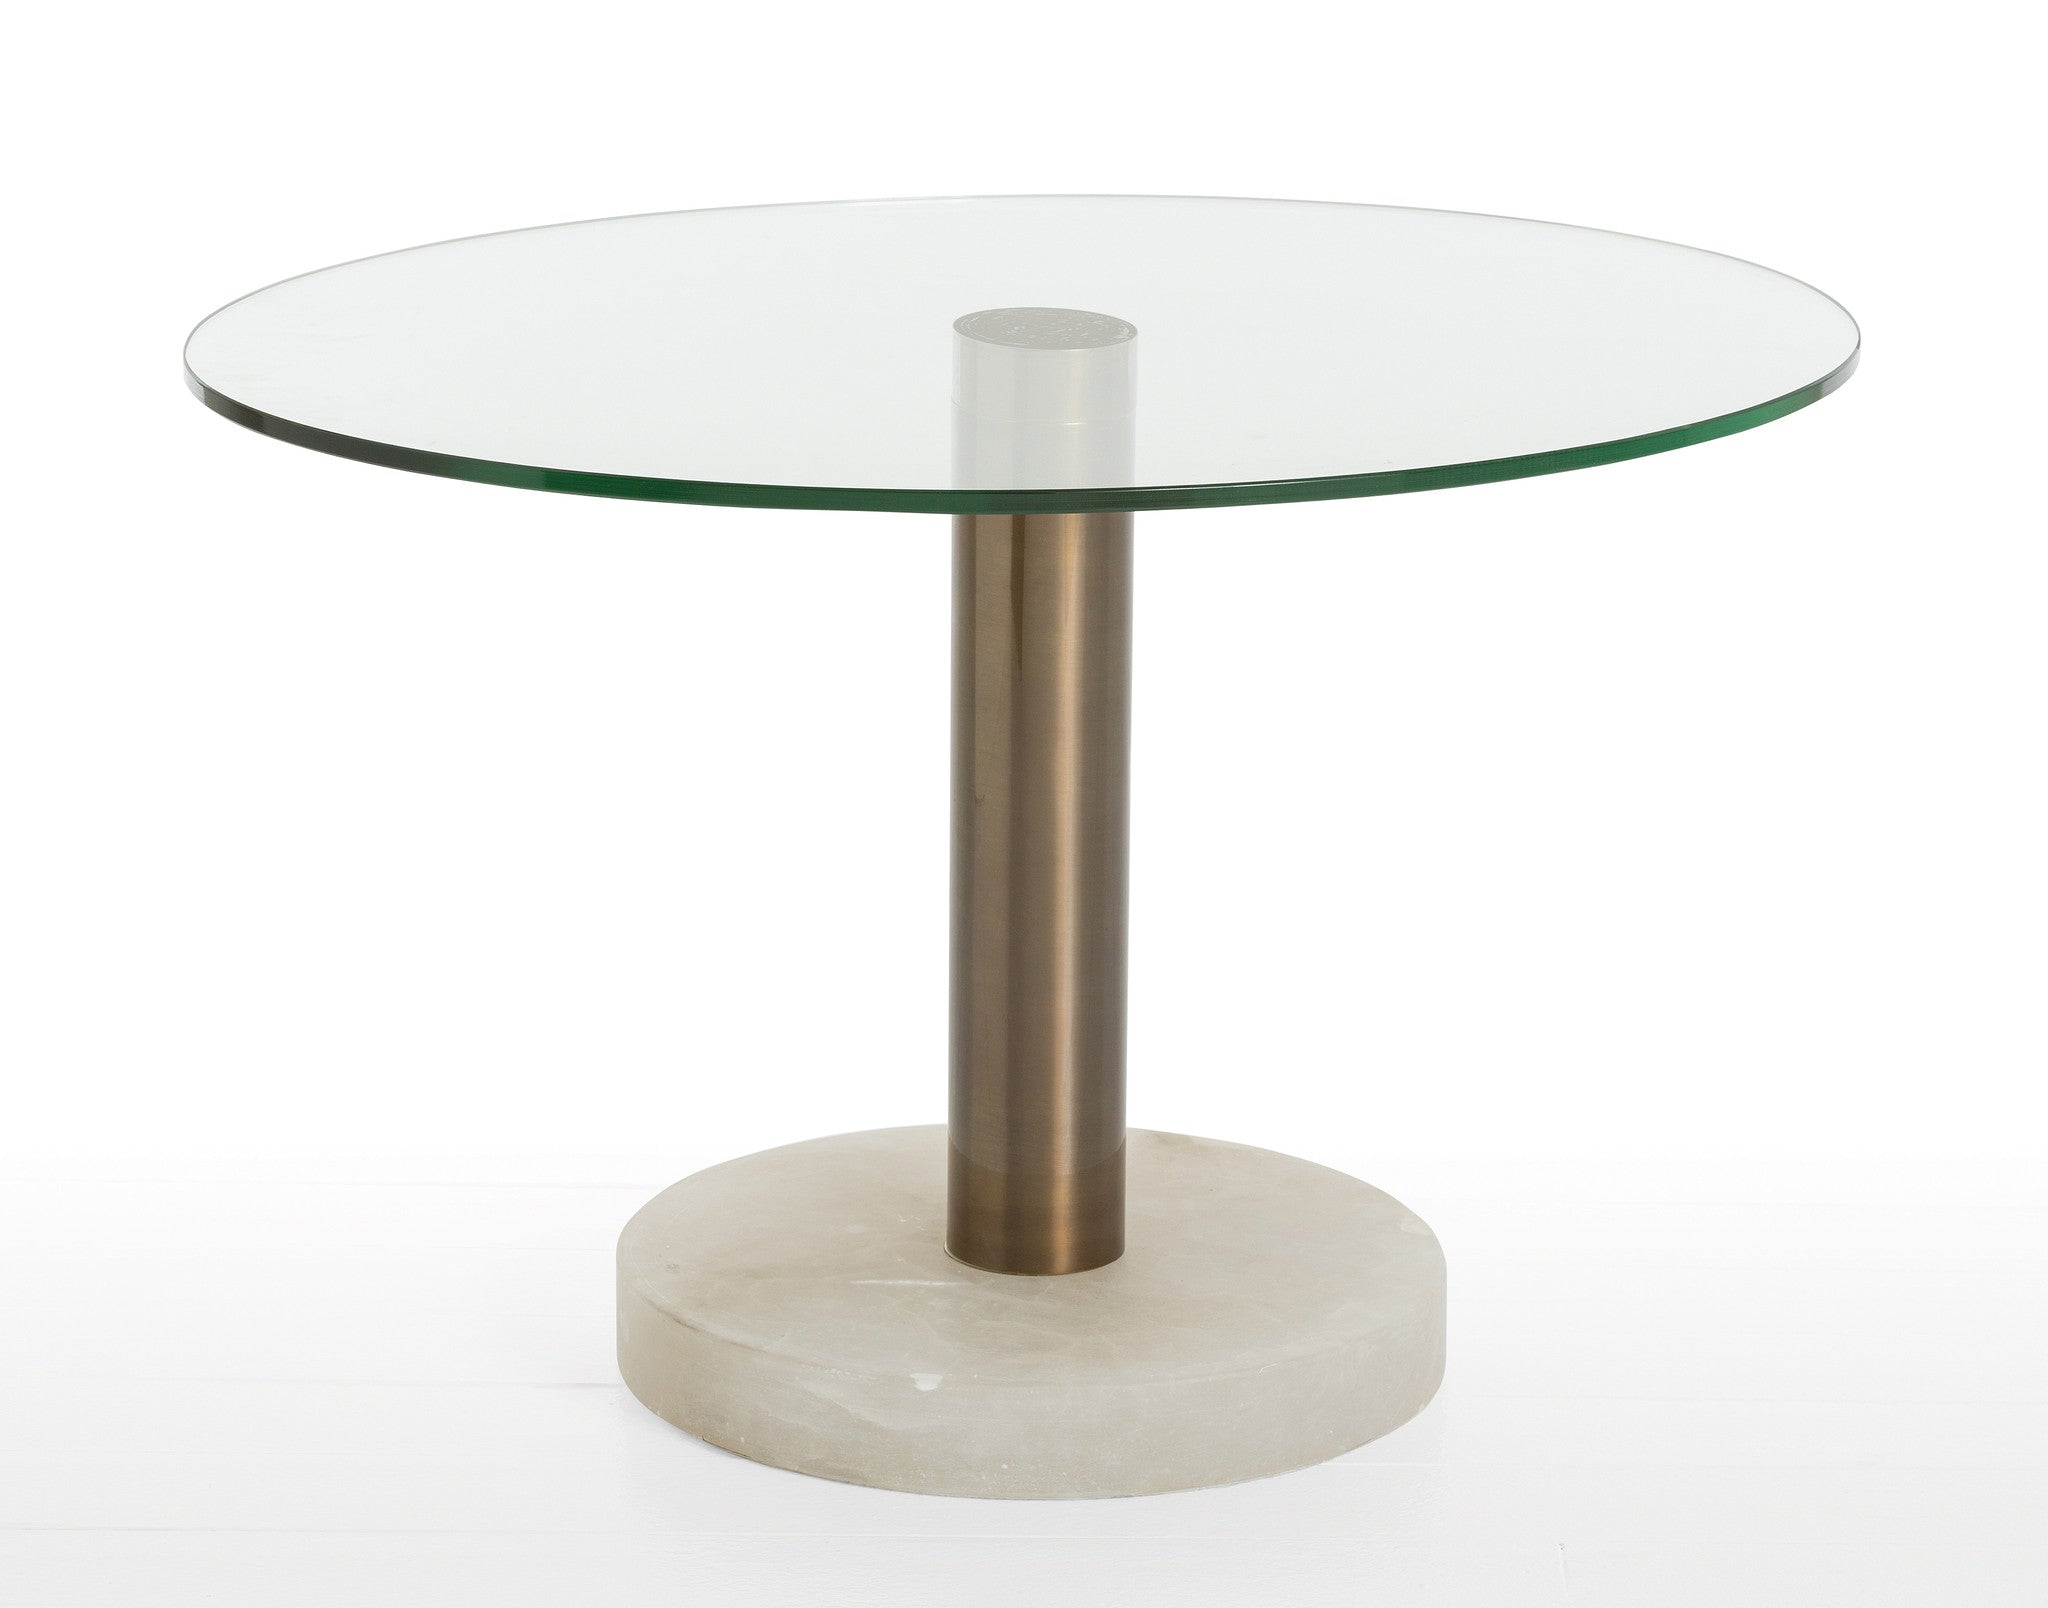 Arteriors Marble, Glass and Brass Side Table - Wanderlustre